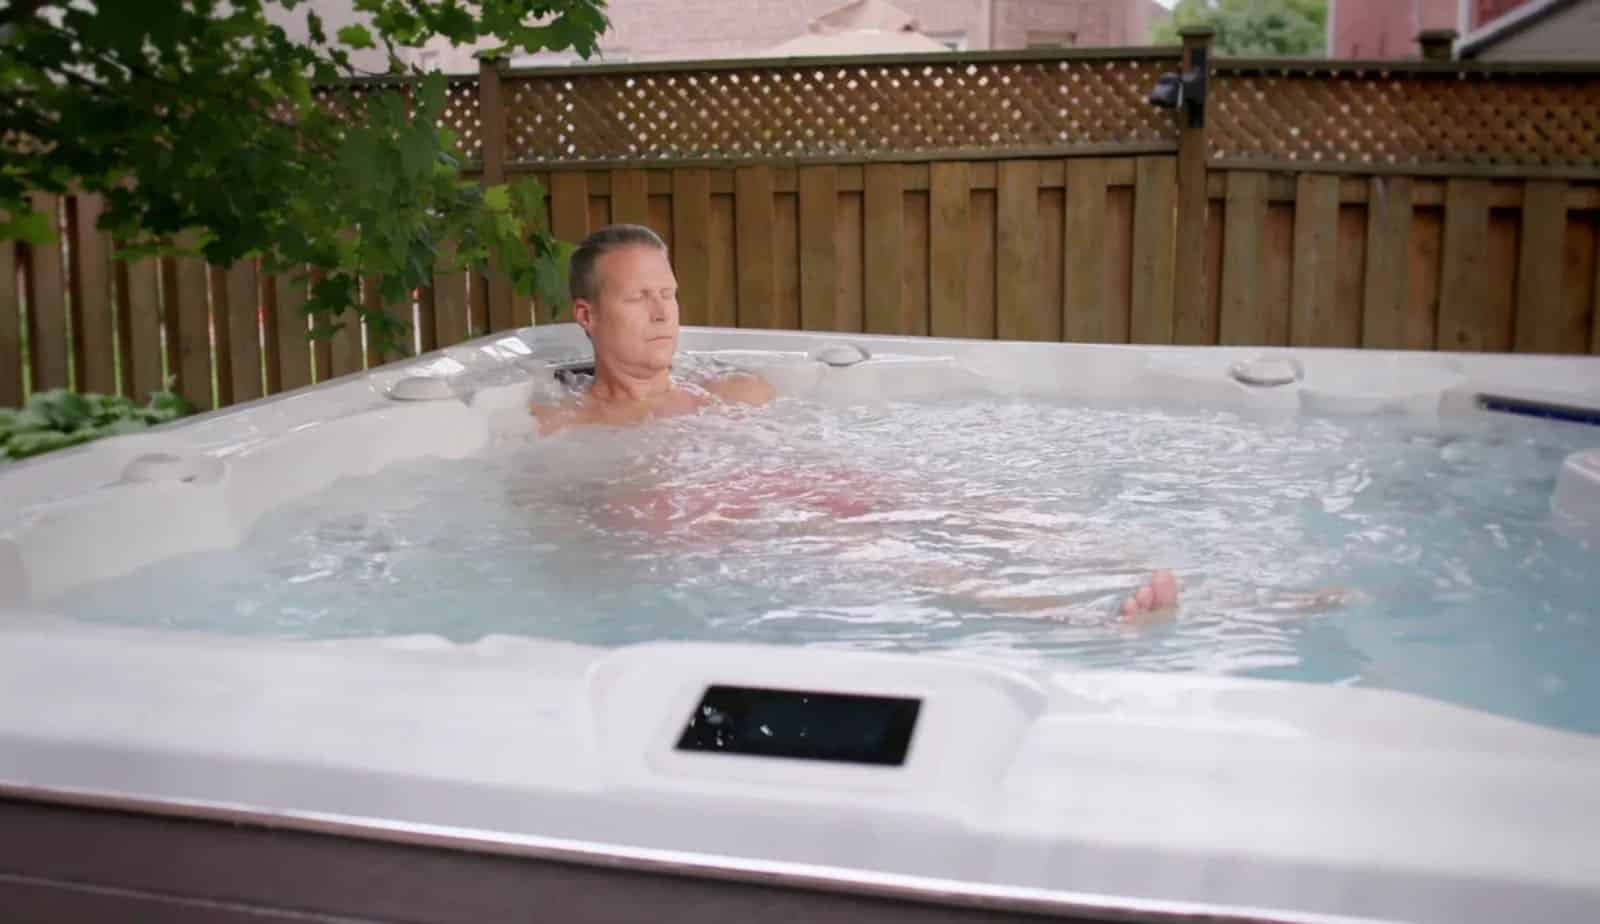 How to Disinfect a Hot Tub